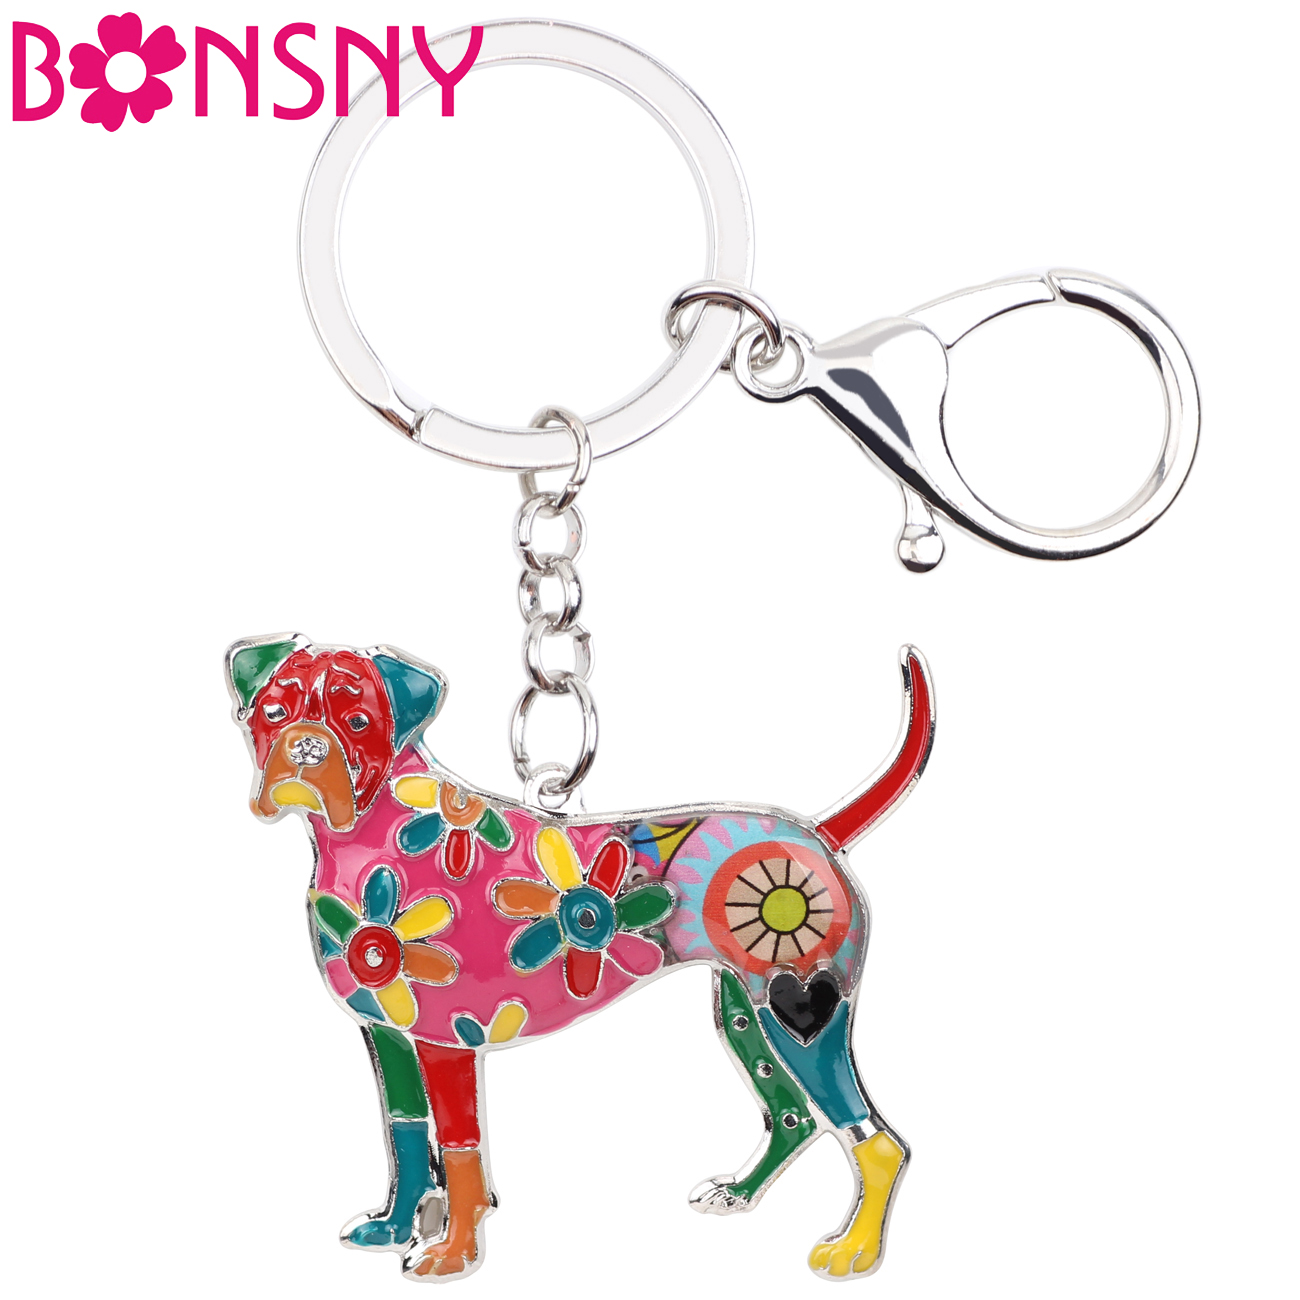 Bonsny Enamel Alloy Boxer Dog Key Chain Key Ring Fashion Jewelry For Women Keychain Souvenir Accessories Handbag Bag Charm